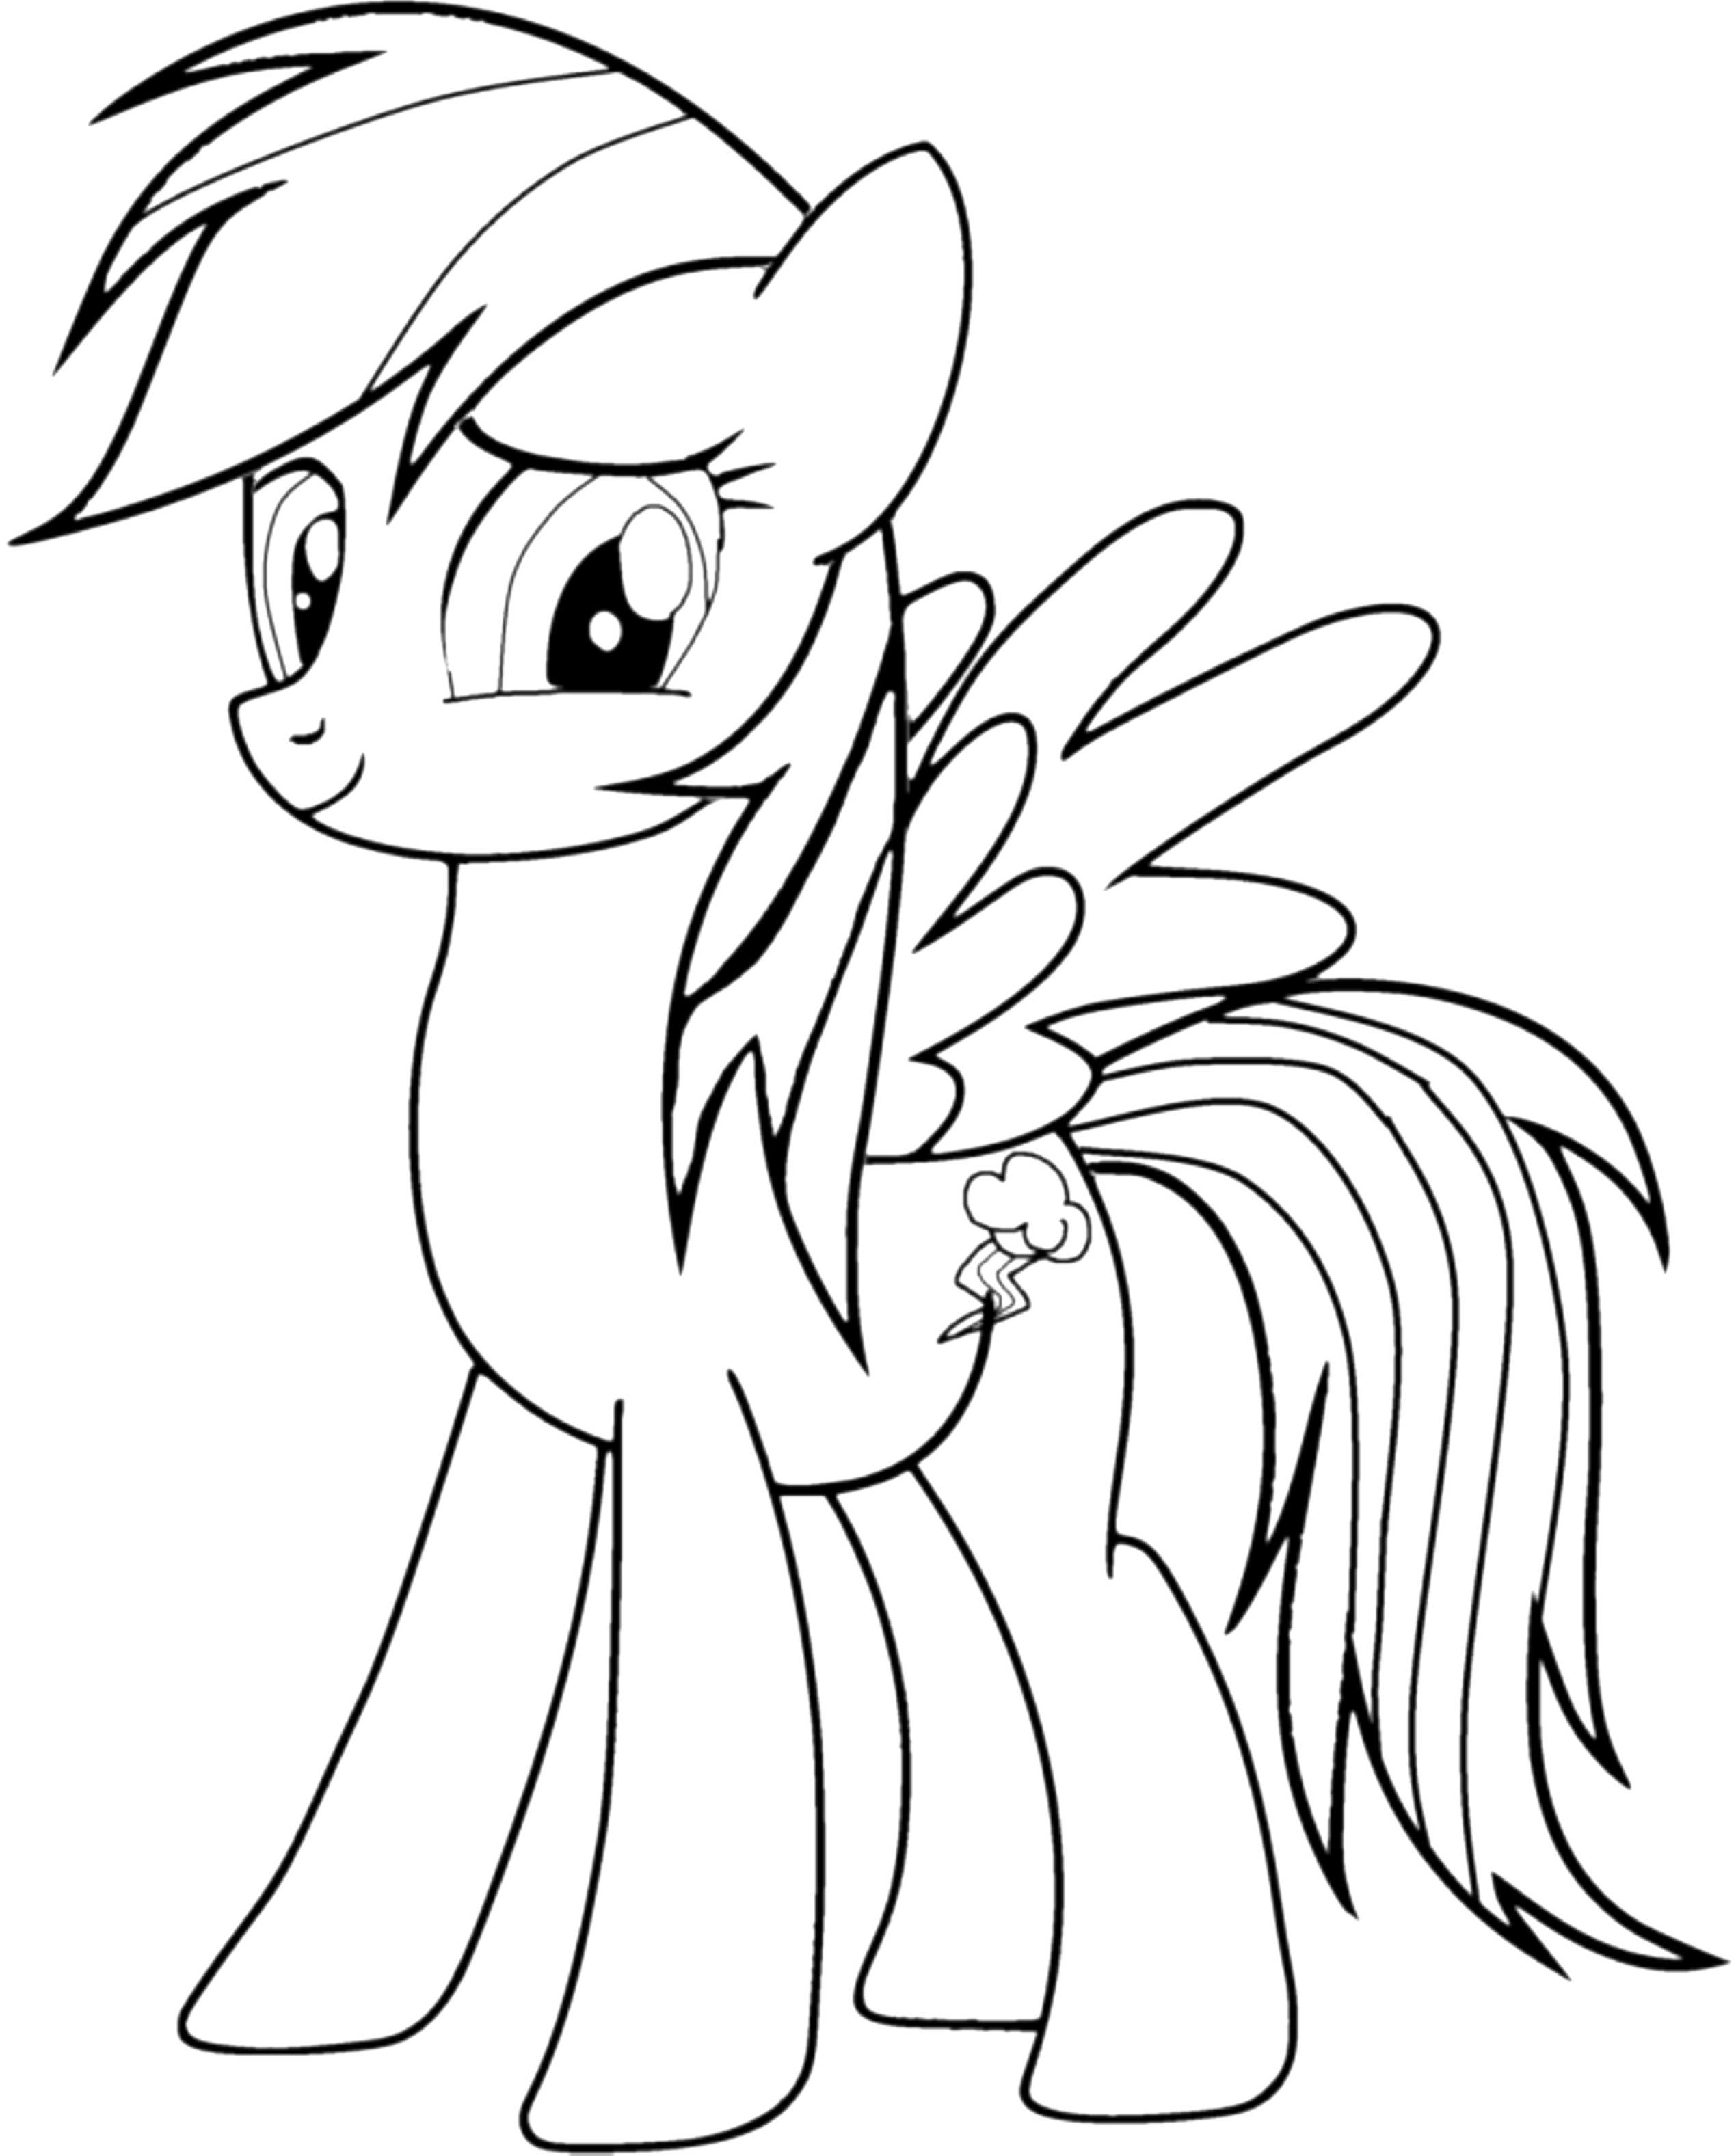 Mlp Coloring Pages Rainbow Dash Az Coloring Pages Coloring Pages For My Pony Rainbow Dash